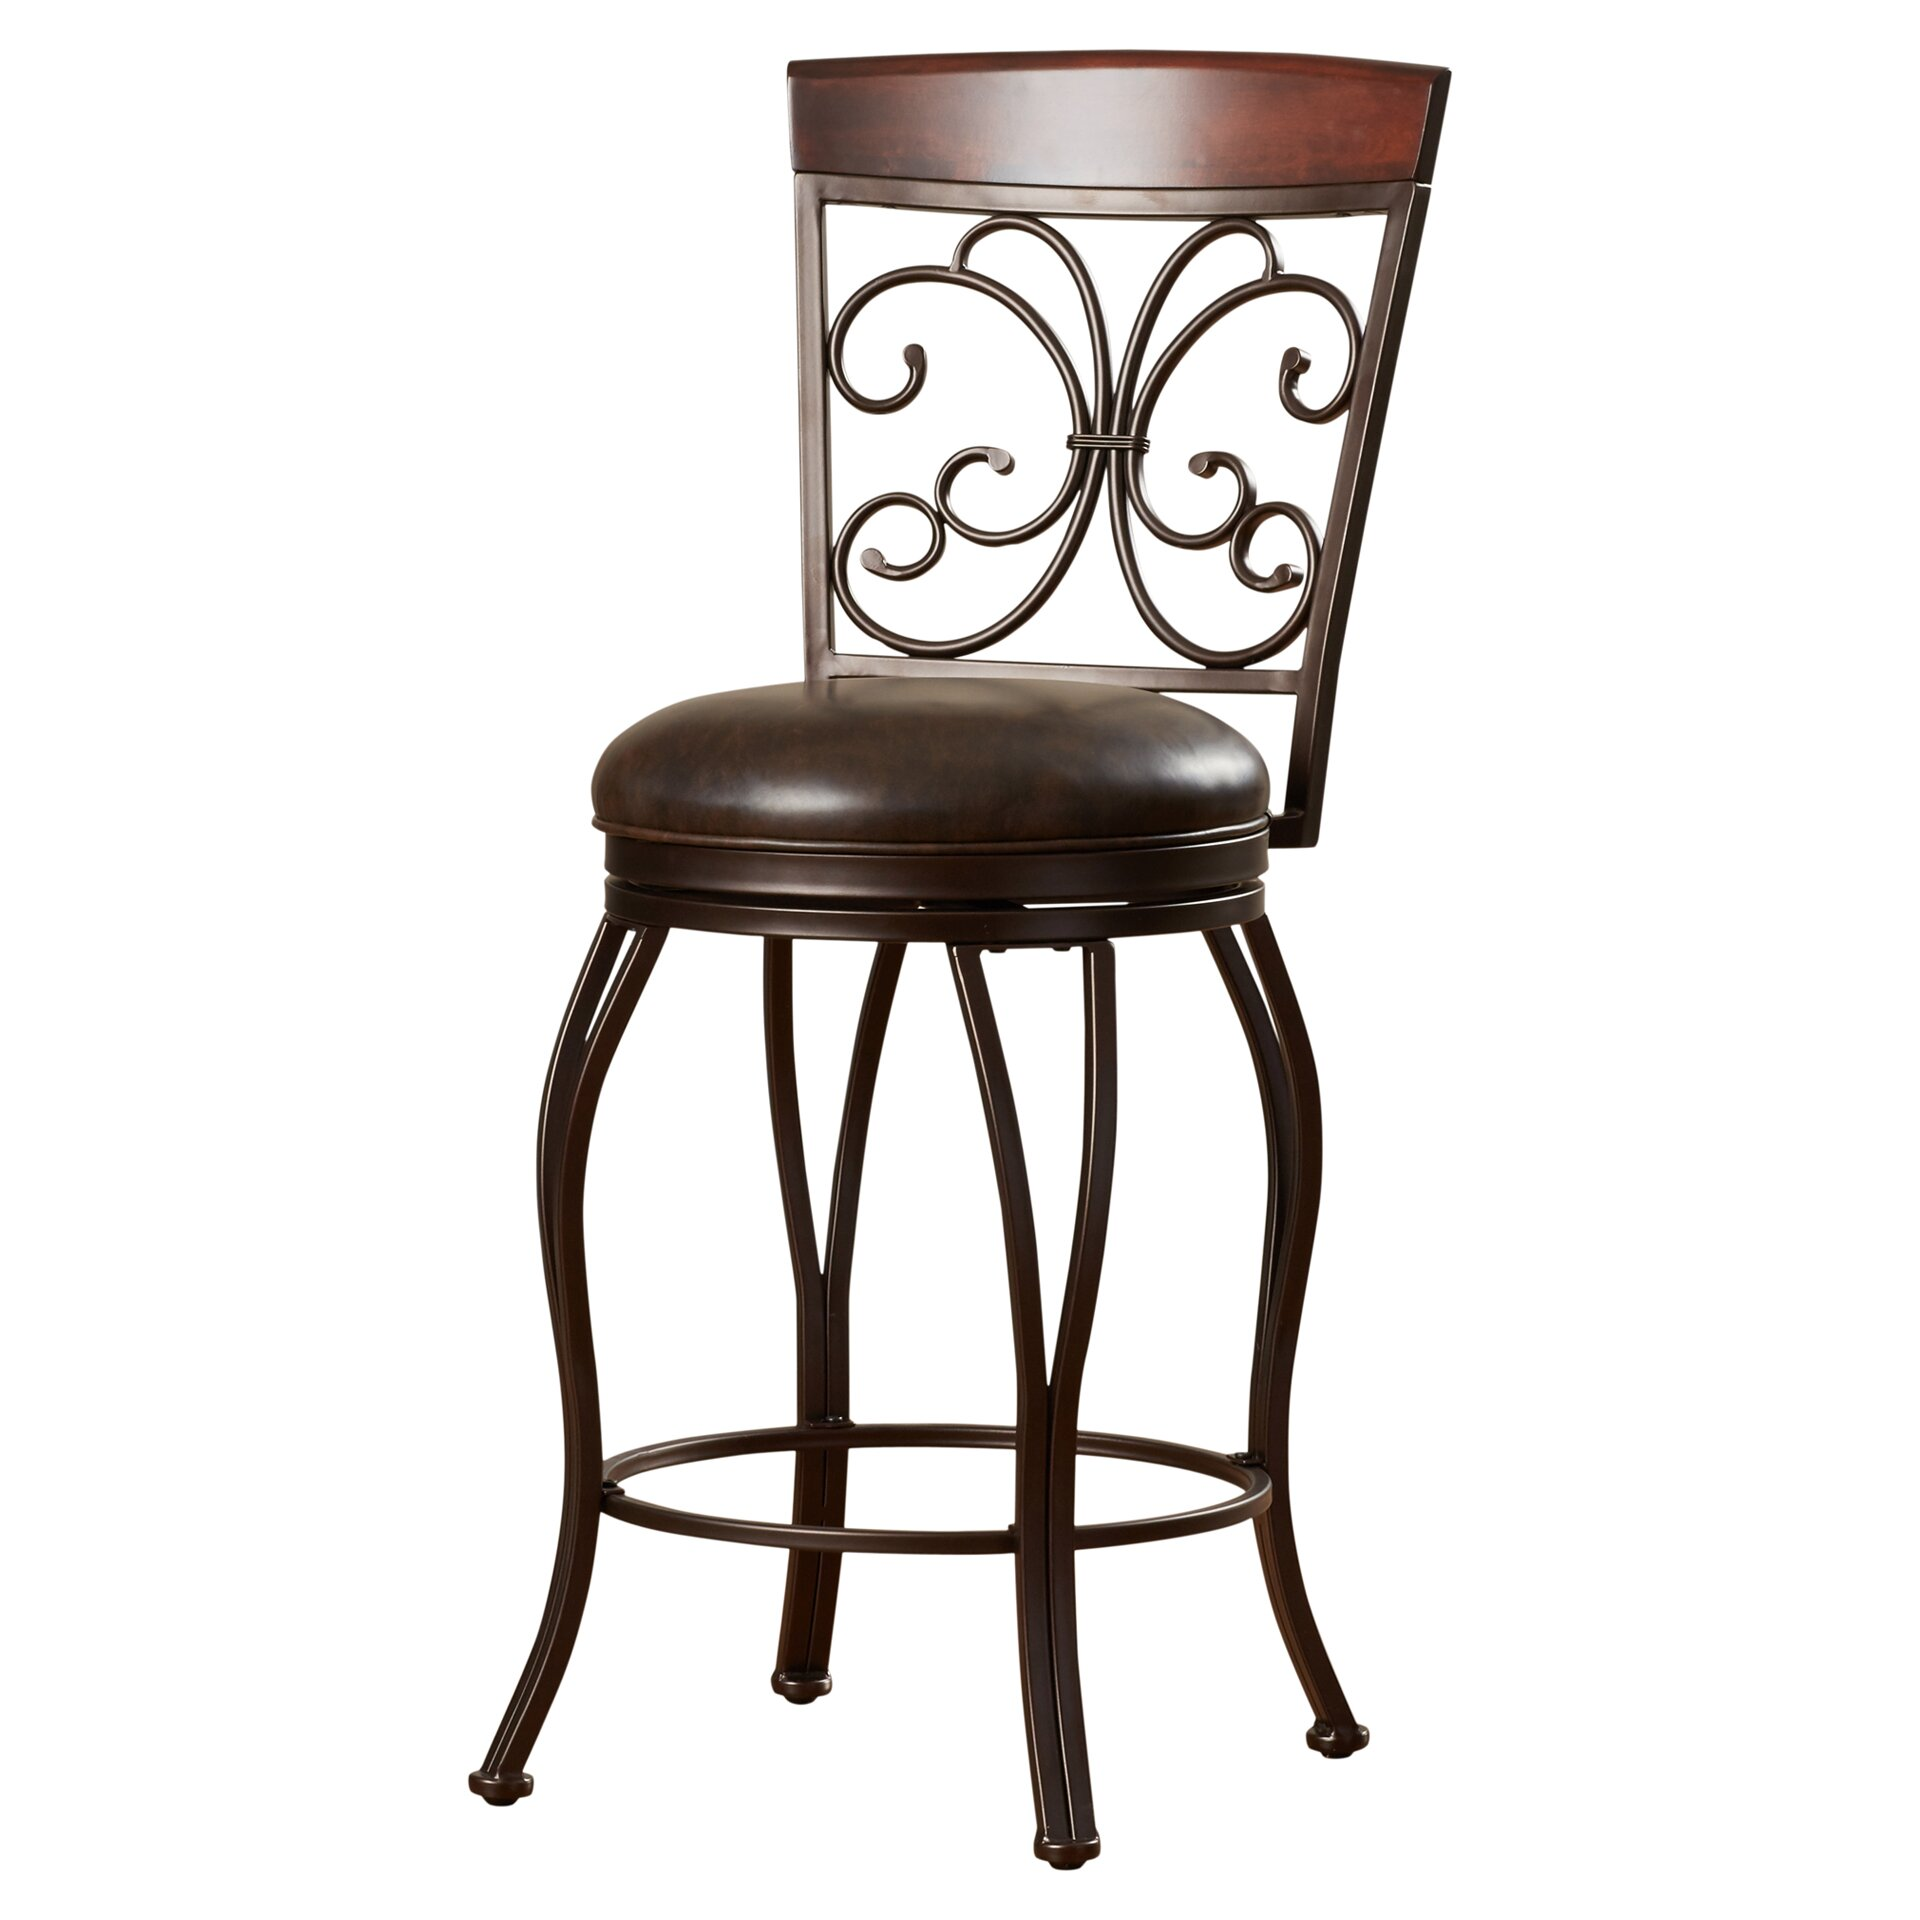 Darby Home Co Edenfield 30 Swivel Bar Stool Reviews